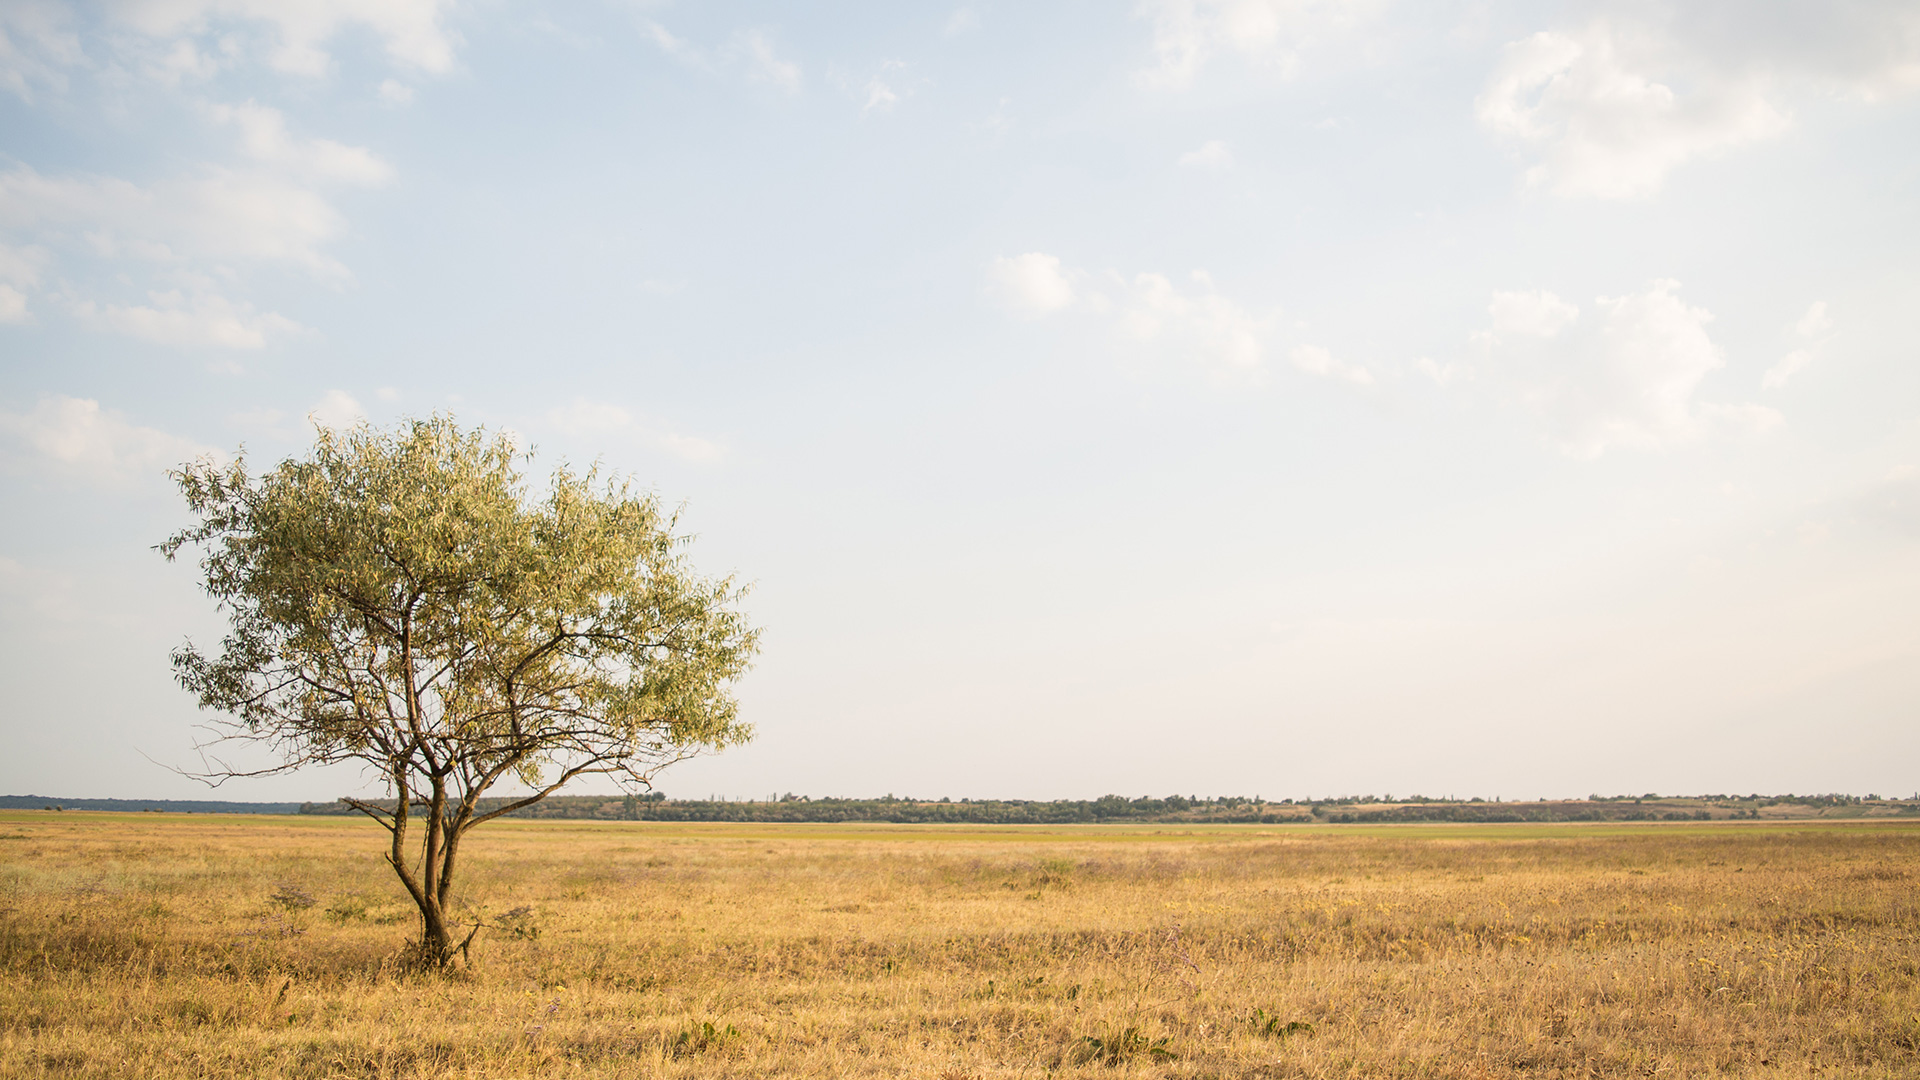 green-leafed-tree-near-withered-grass